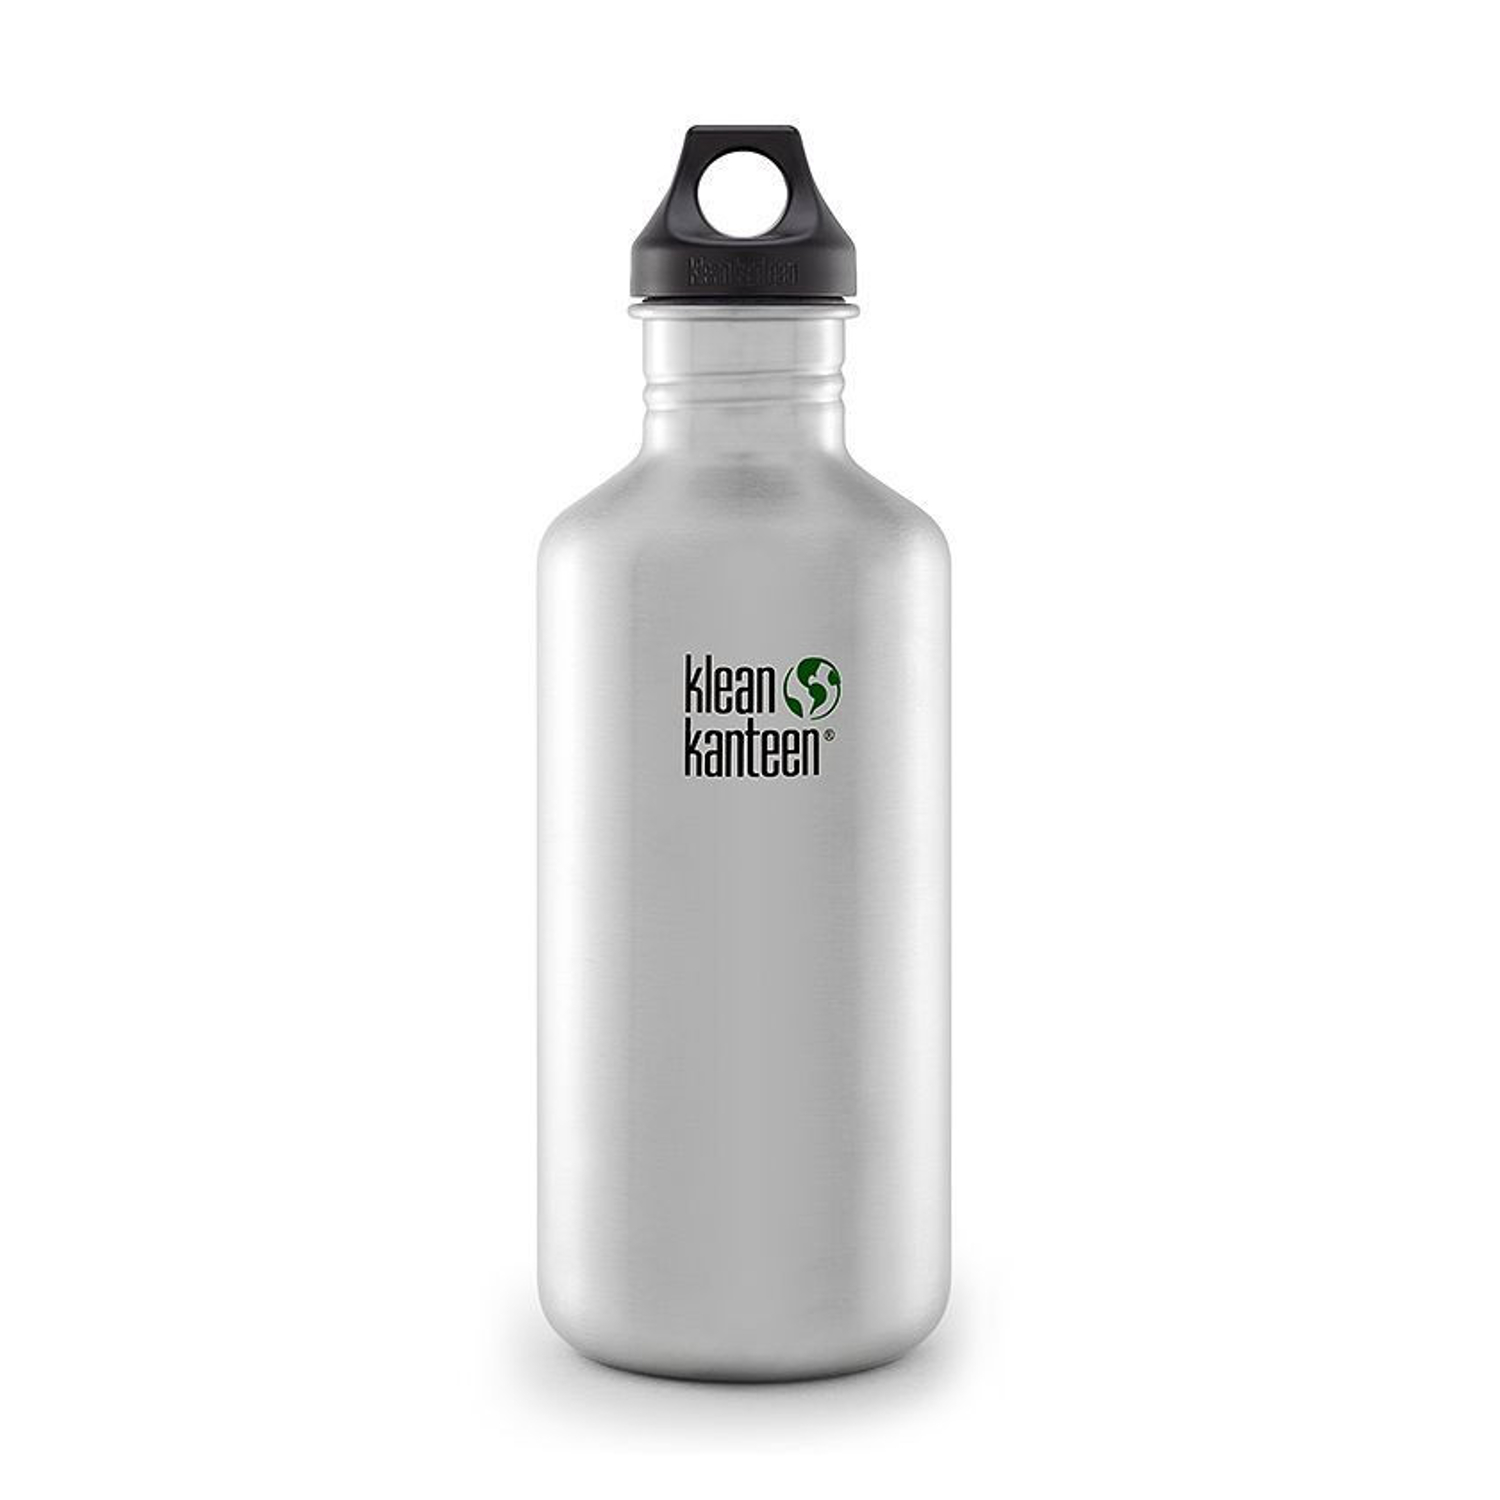 Klean Kanteen Stainless Steel Loop Cap Bottle